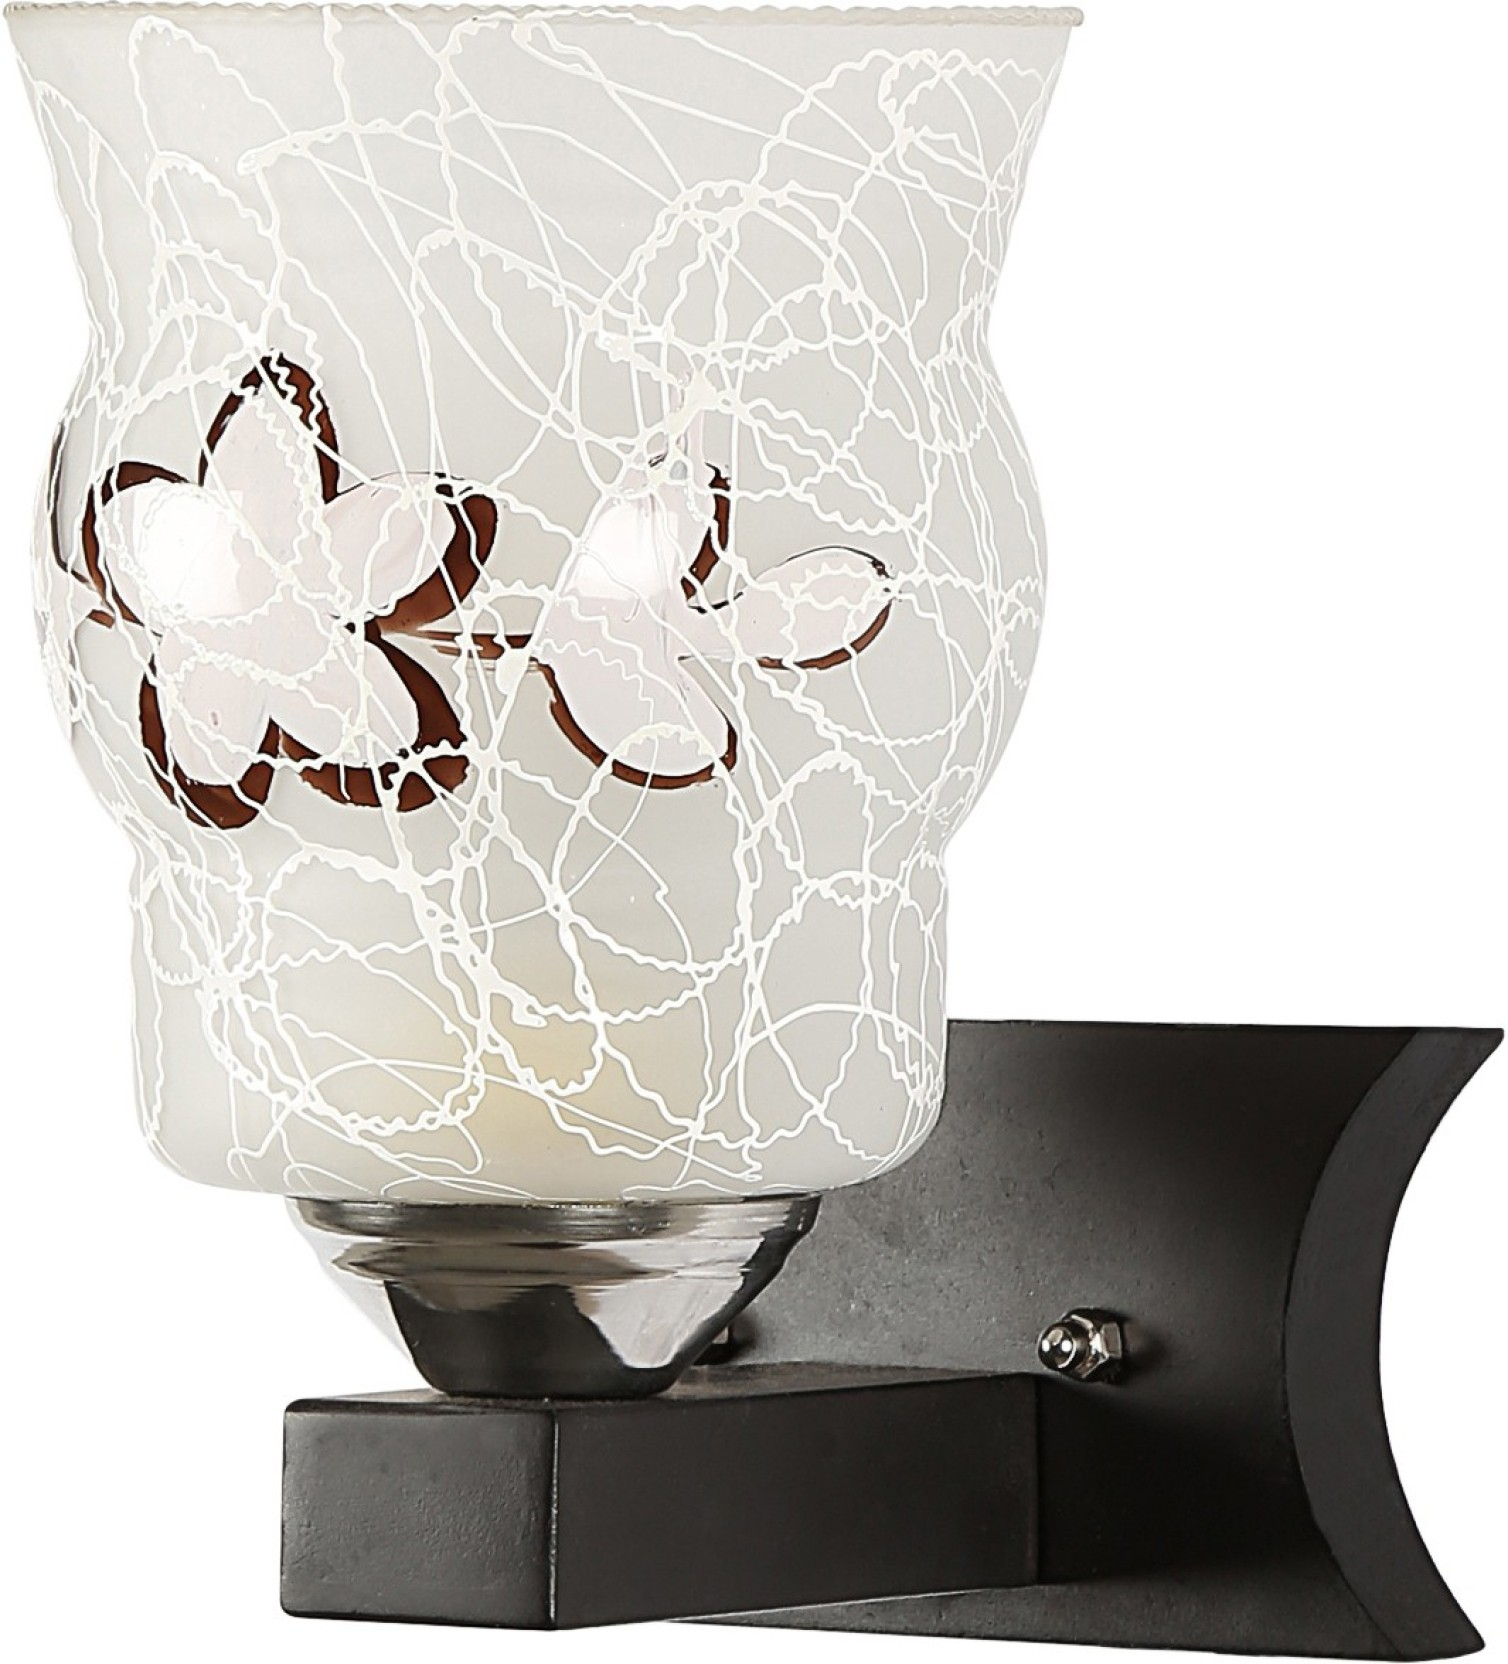 Wall Lamps Flipkart : Gojeeva Sconce Wall Lamp Price in India - Buy Gojeeva Sconce Wall Lamp online at Flipkart.com